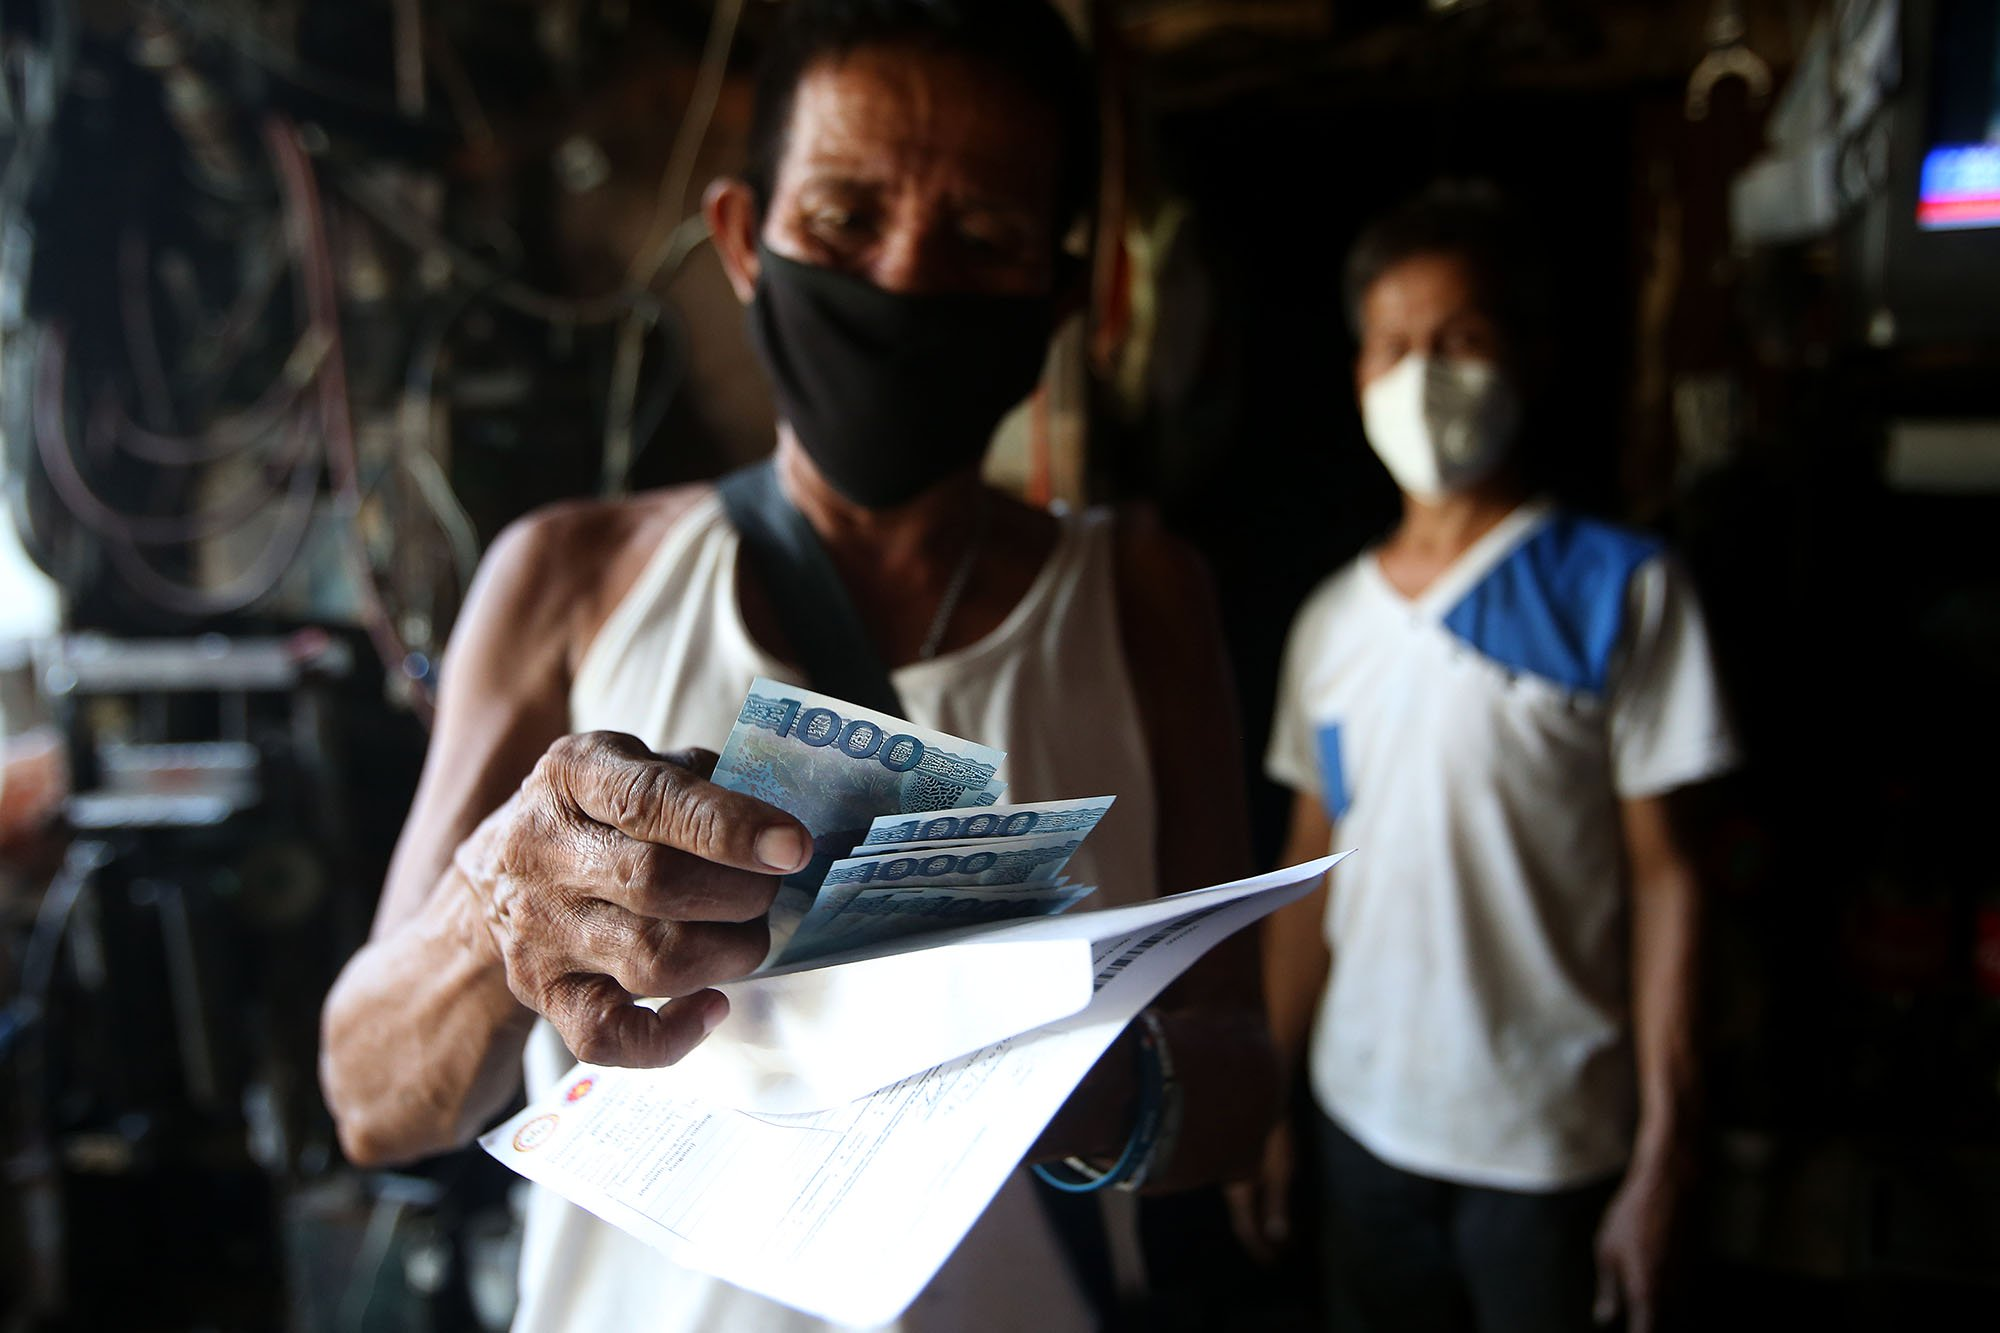 Masterlist of Cash Aid Beneficiaries, Ordered to be Sent by DILG